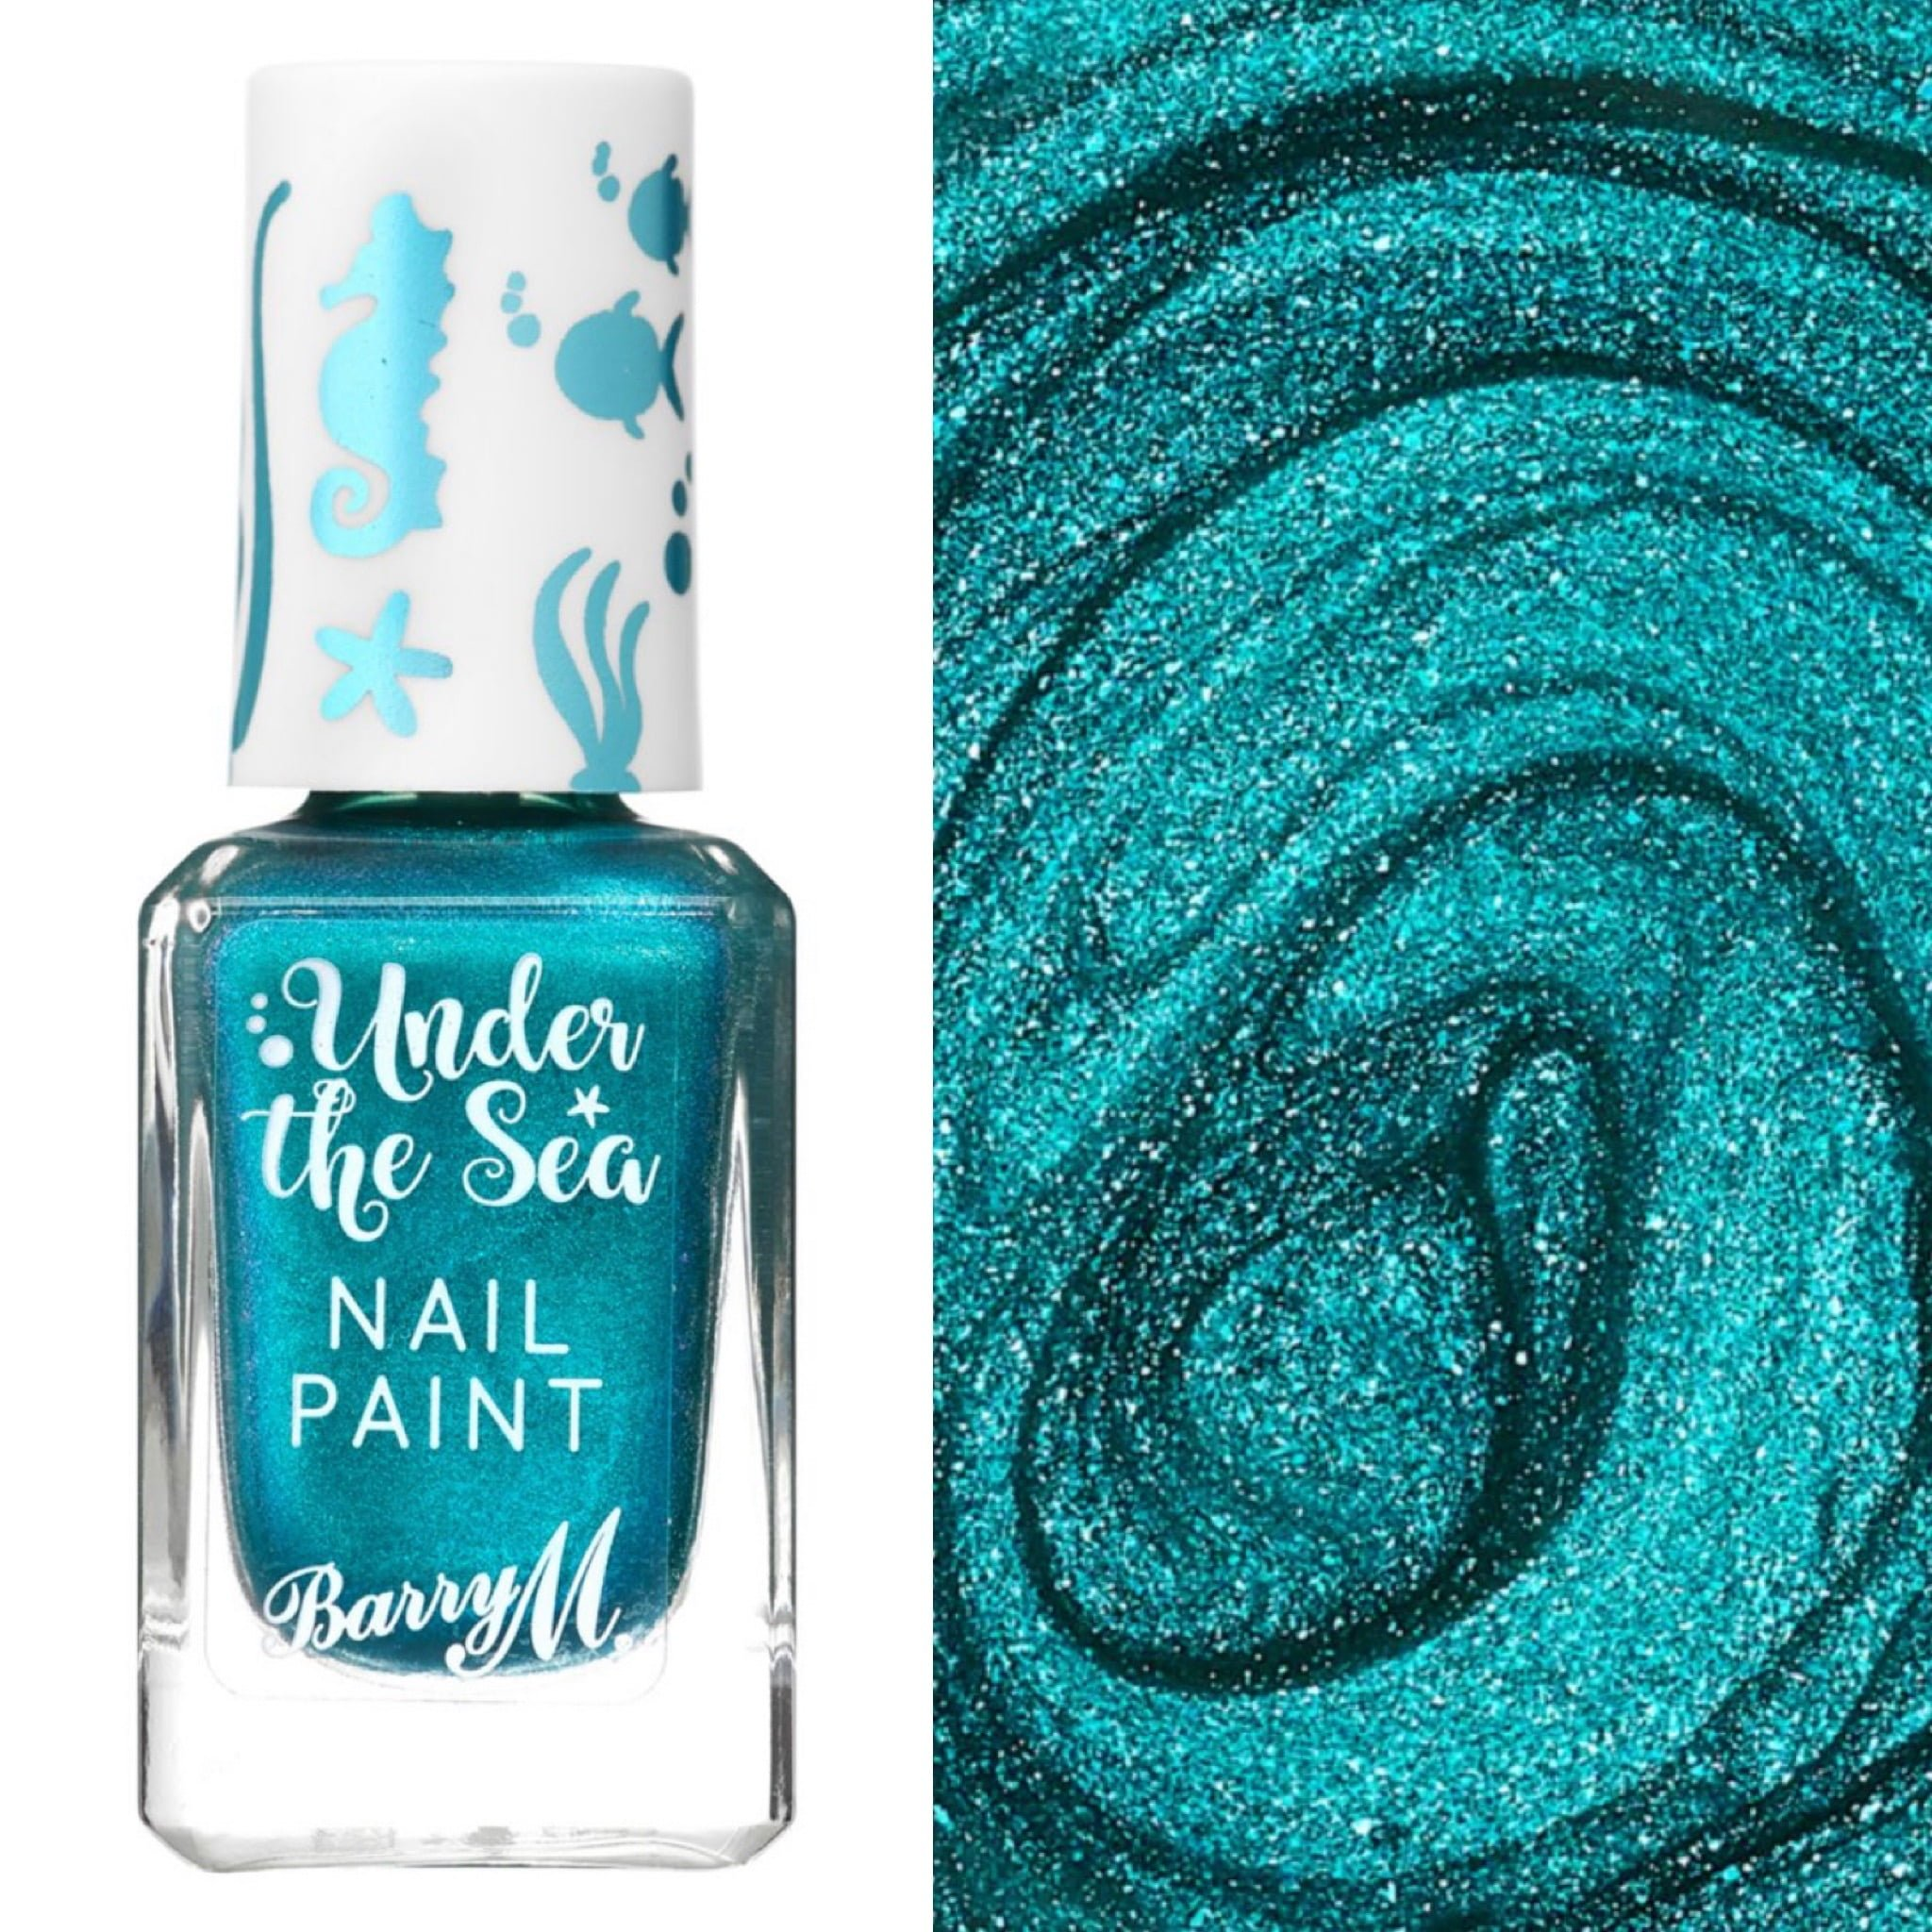 Barry M Mermaid Tail Under The Sea Nail Paint